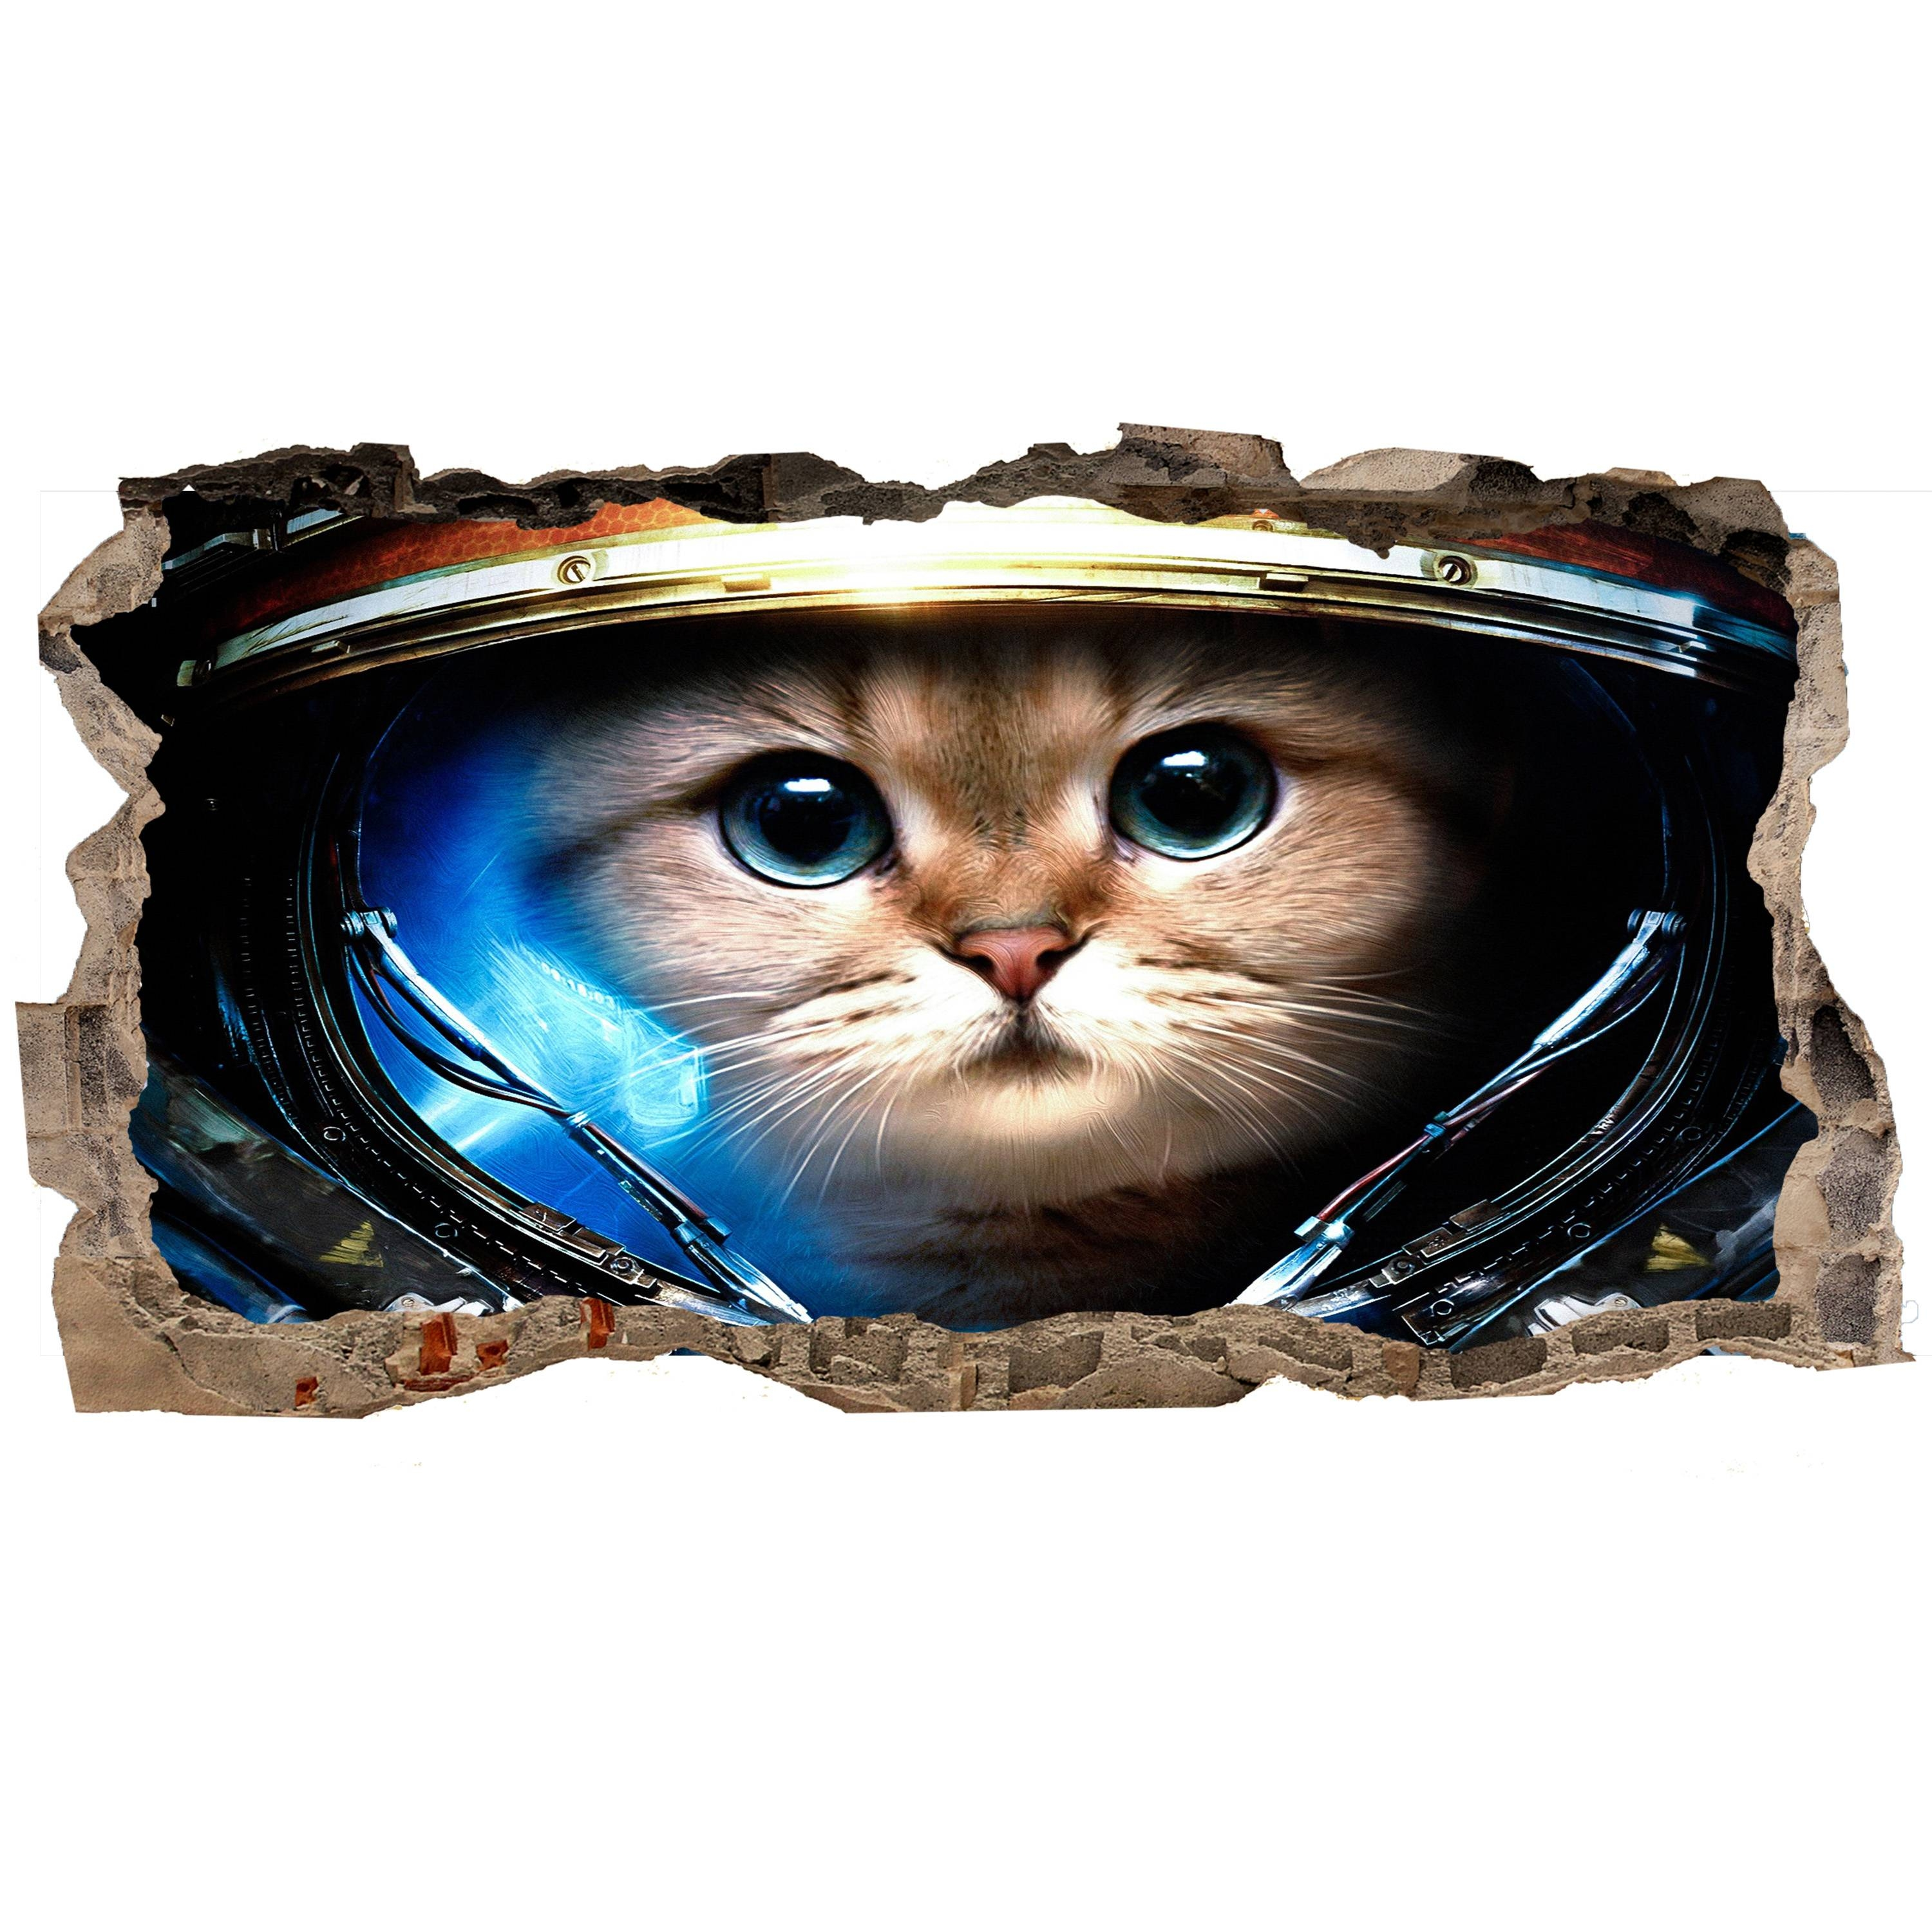 Startonight 3D Mural Wall Art Photo Decor Astronaut Cat Amazing Intended For Best And Newest Astronaut 3D Wall Art (View 18 of 20)